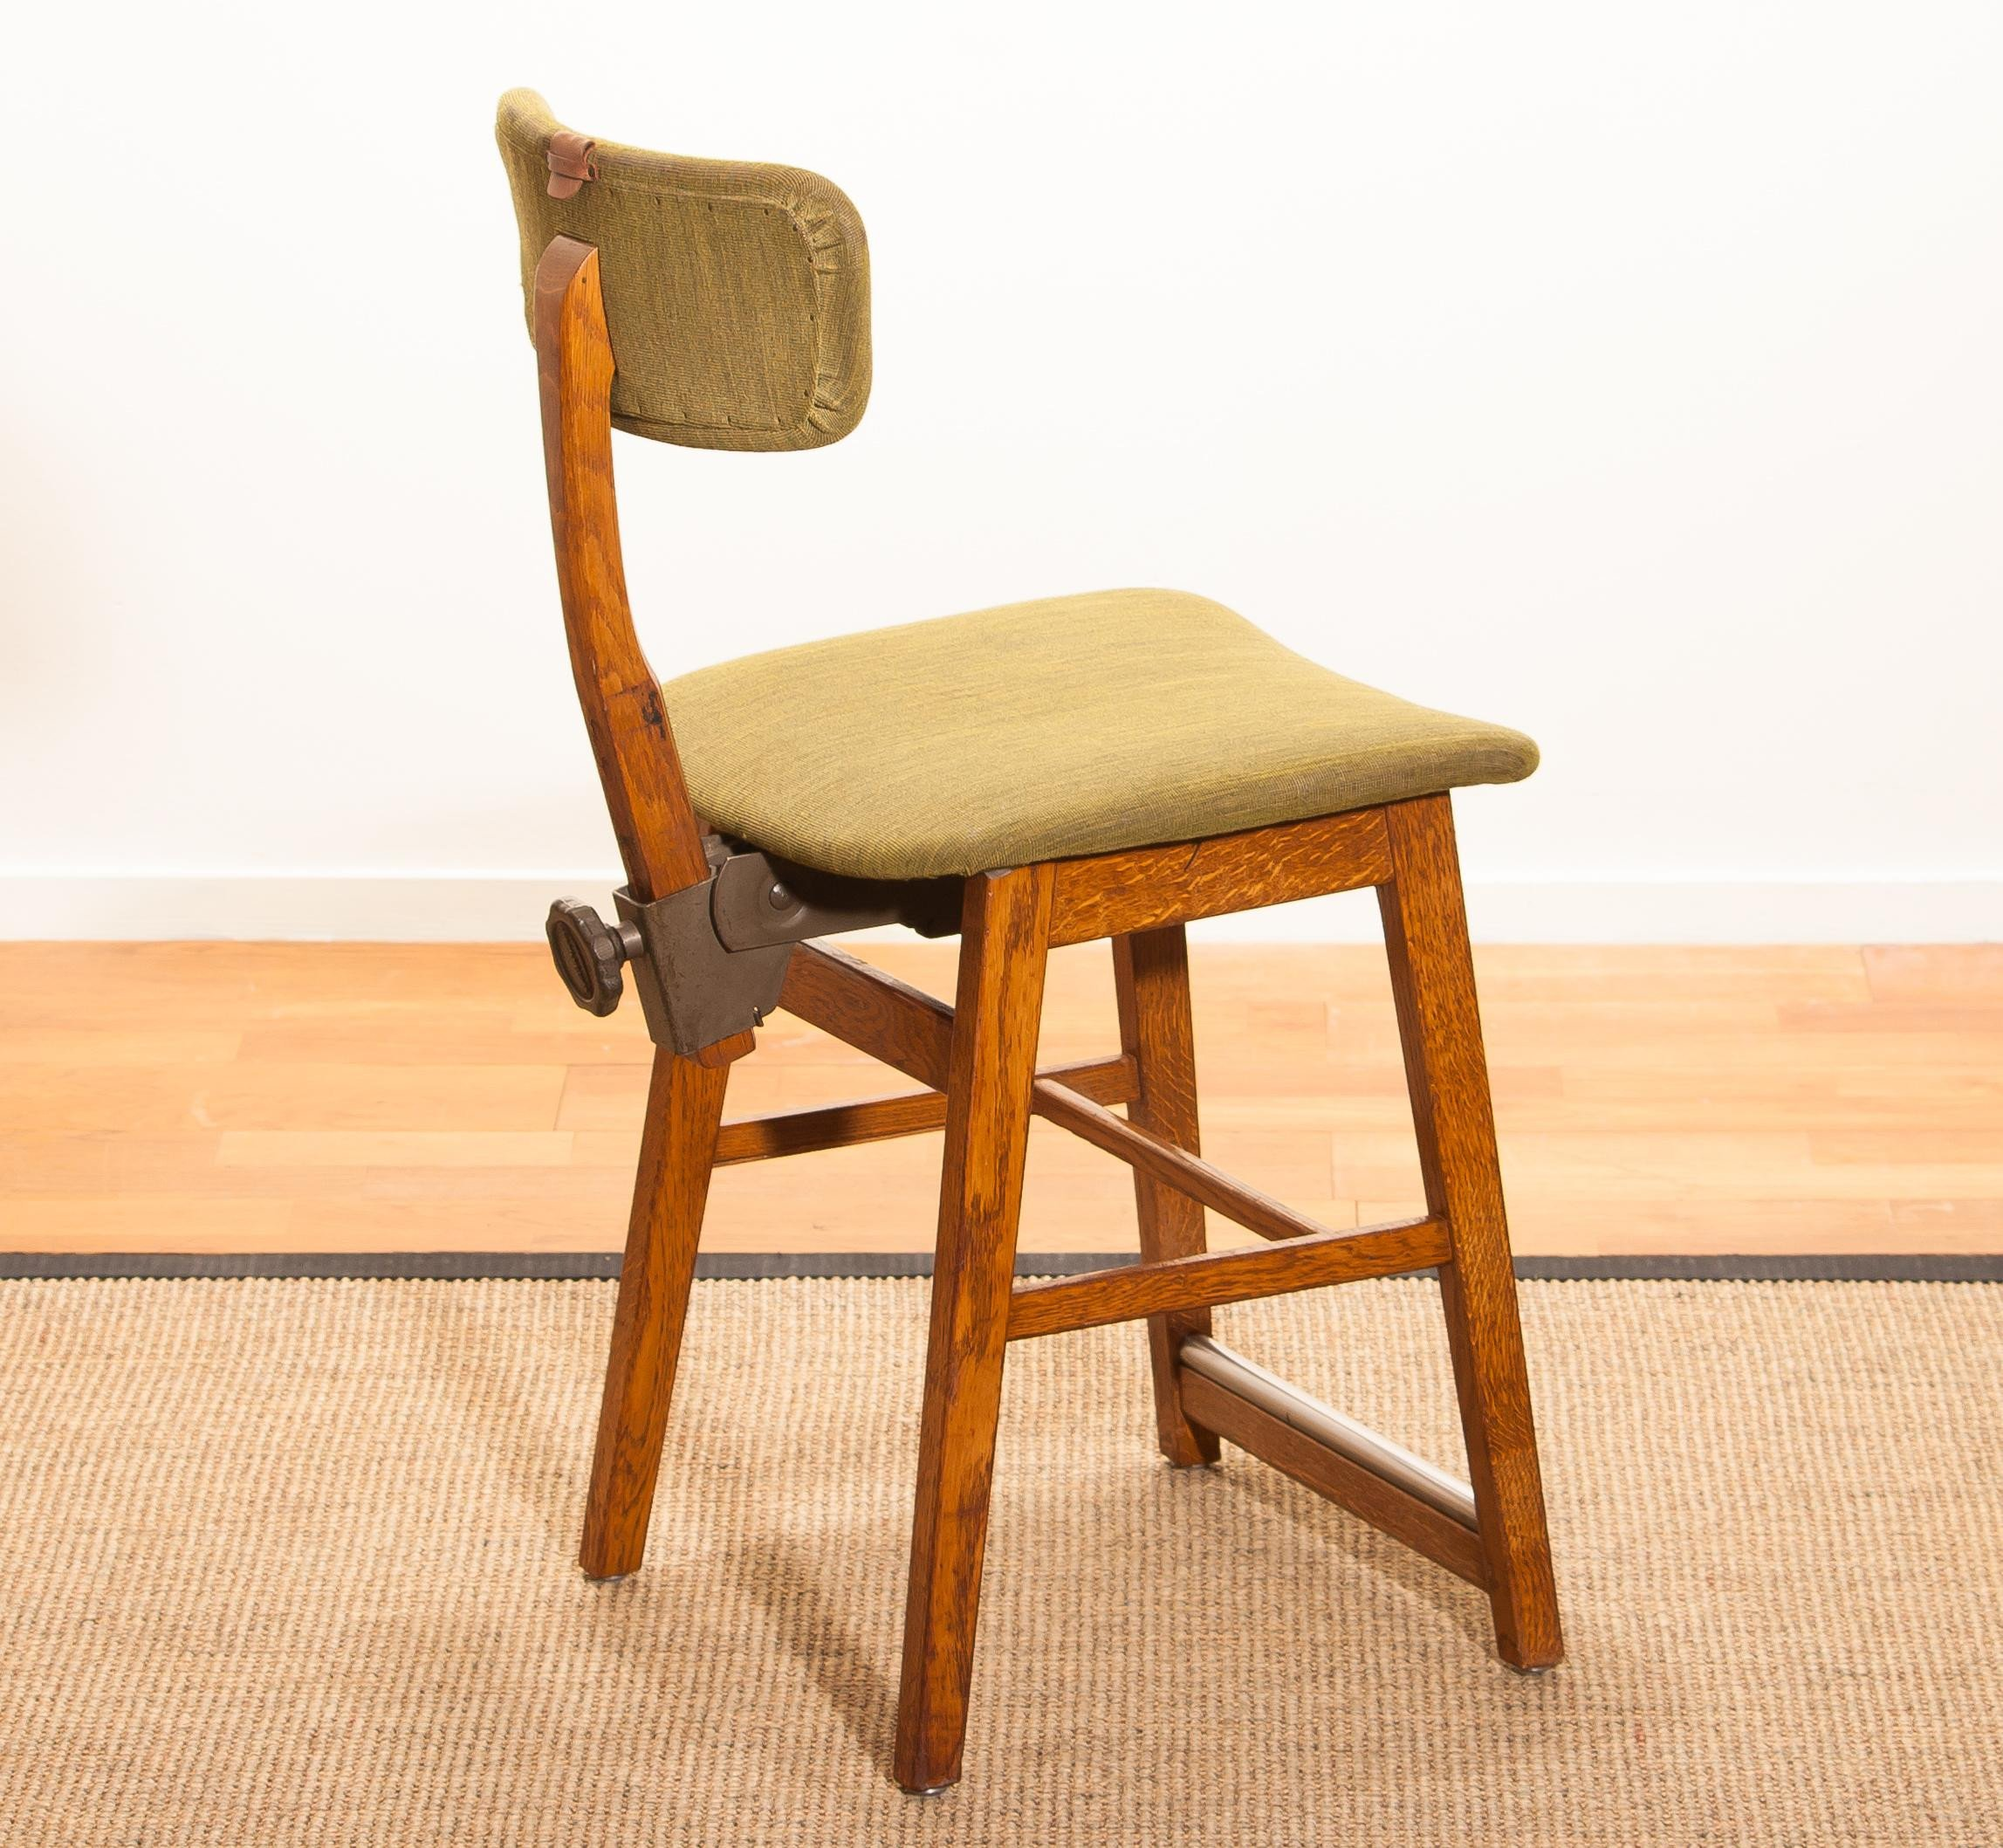 1940s Bedroom Furniture Styles Best Of 1940s Oak and Wool Desk Chair by 'tvidabergs Sweden for